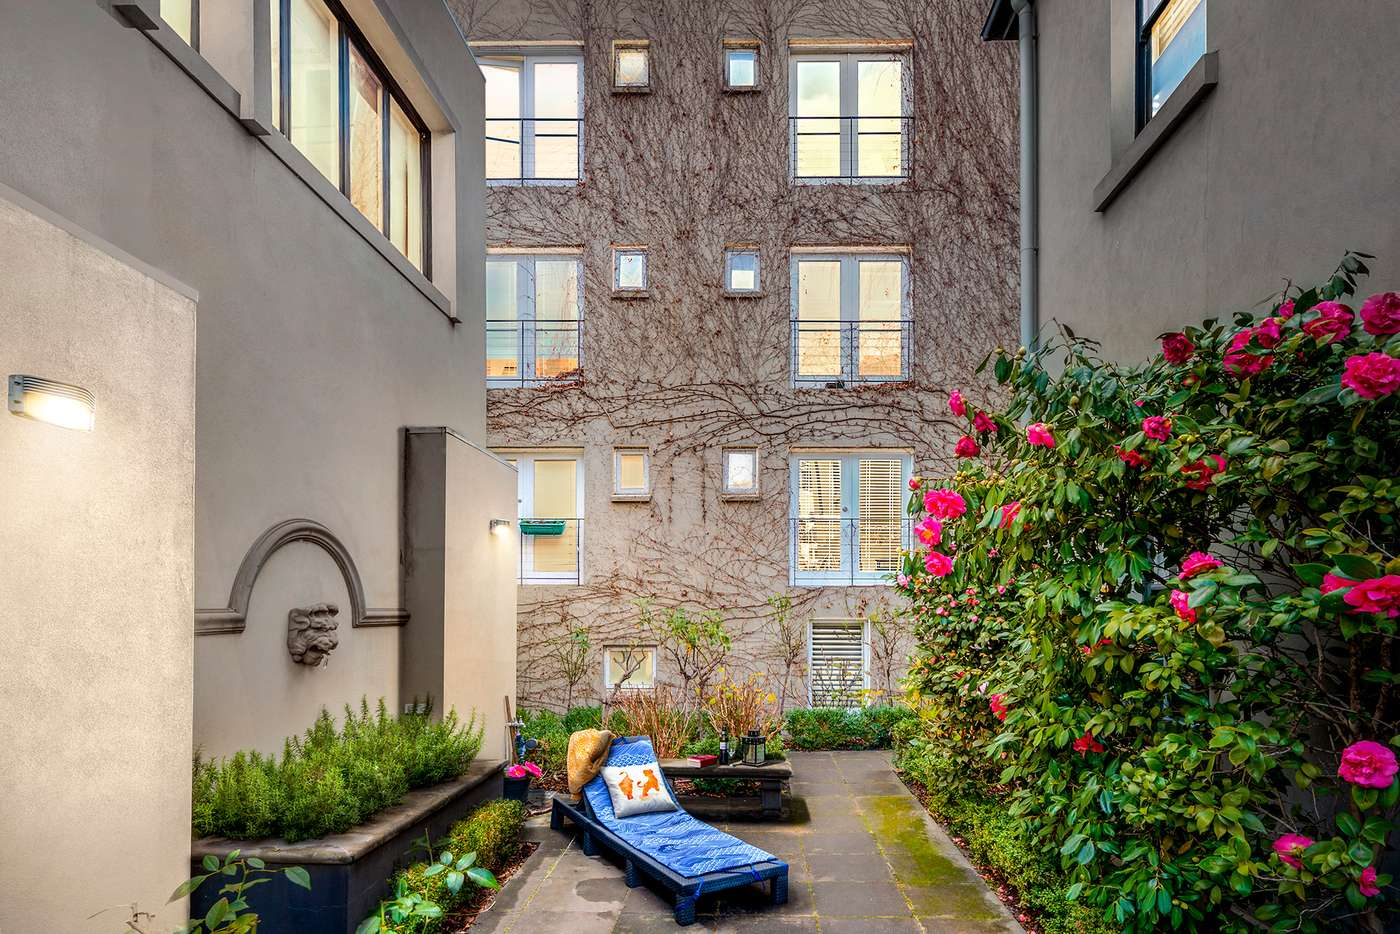 Main view of Homely apartment listing, 43/87 Alma Road, St Kilda East VIC 3183